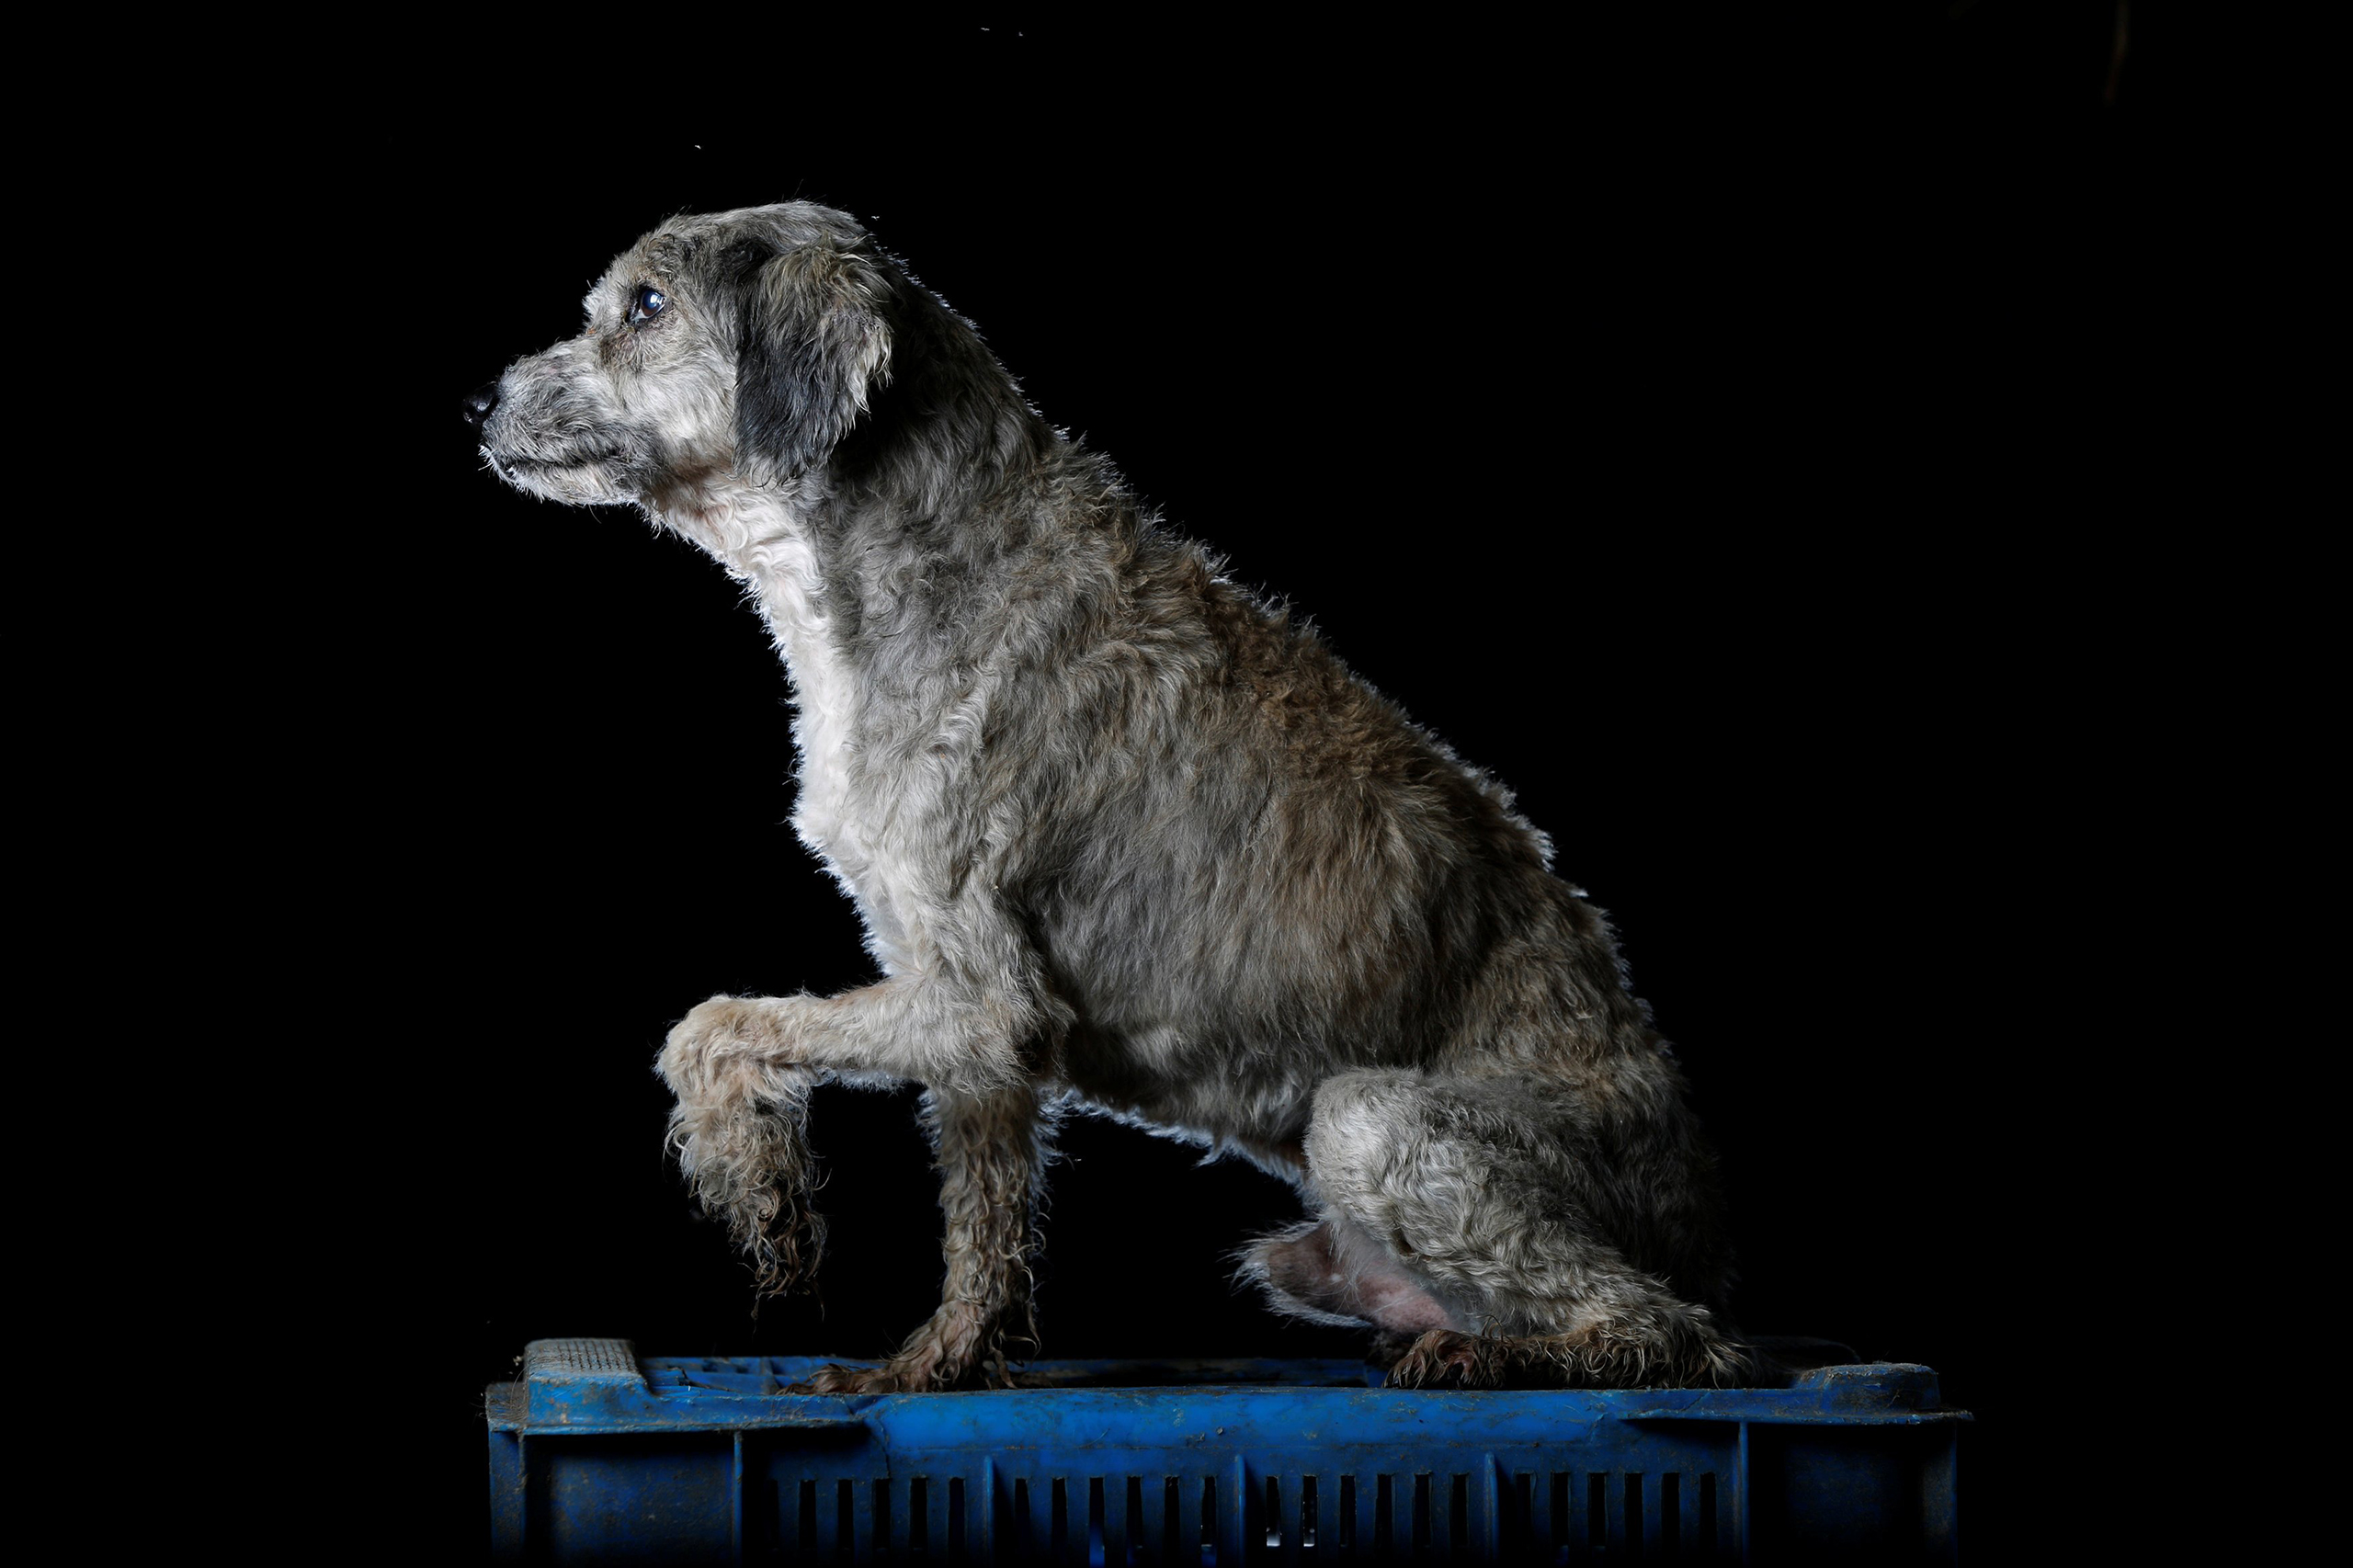 Petete is pictured at the Famproa dogs shelter in Los Teques, Venezuela Aug. 16, 2016. Petete has spent over eight years in the shelter.  When the dog arrived, he had worms and sores on a leg. It was hard to heal and even when it did, his leg never fully functioned again. He is loving, but only until it is meal time, because then he fights with everyone and bites anyone who comes close,  said Maria Silva, who takes care of dogs at the shelter.